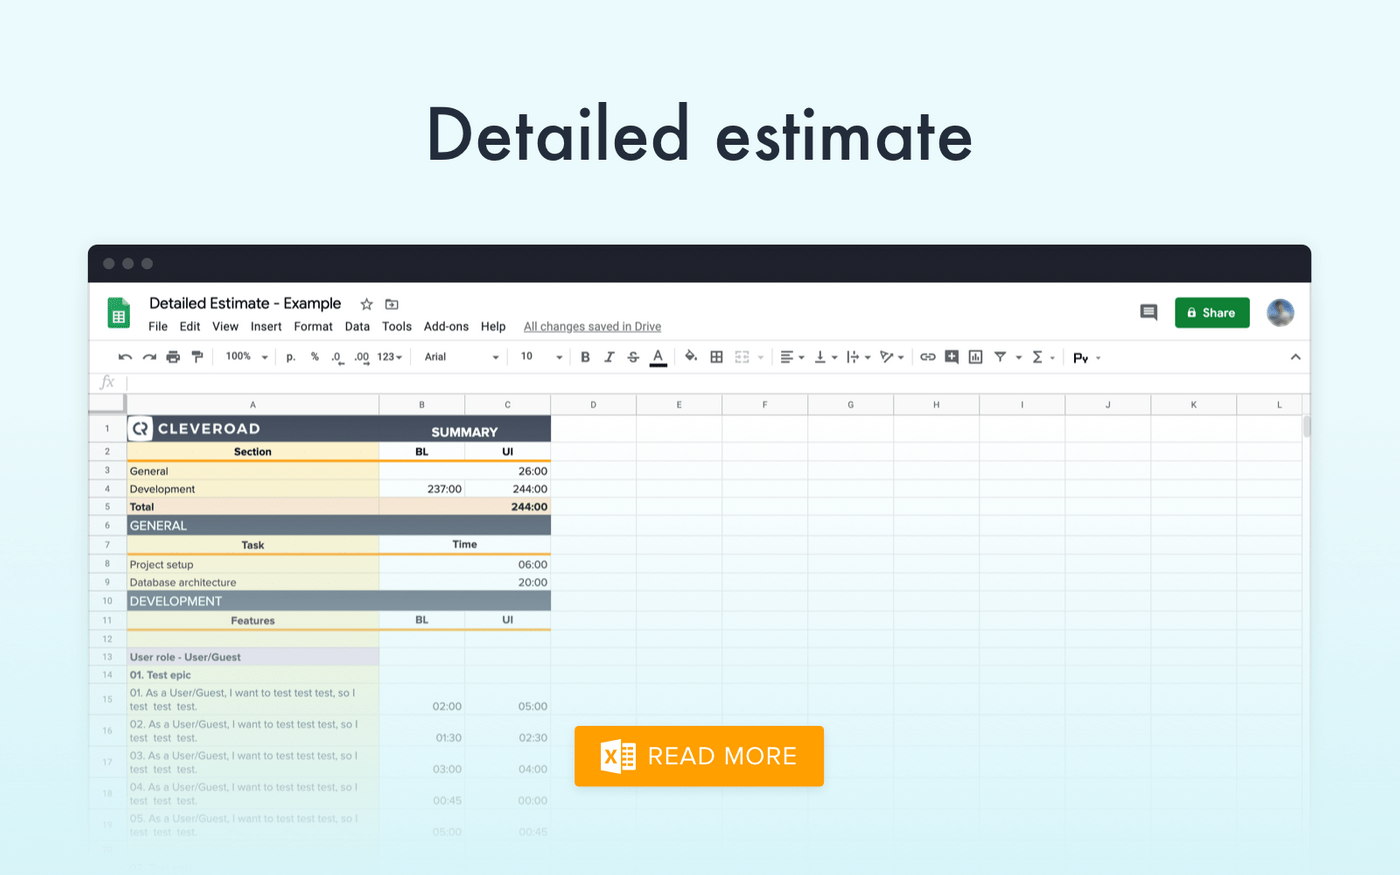 Detailed estimate PDF example by Cleveroad